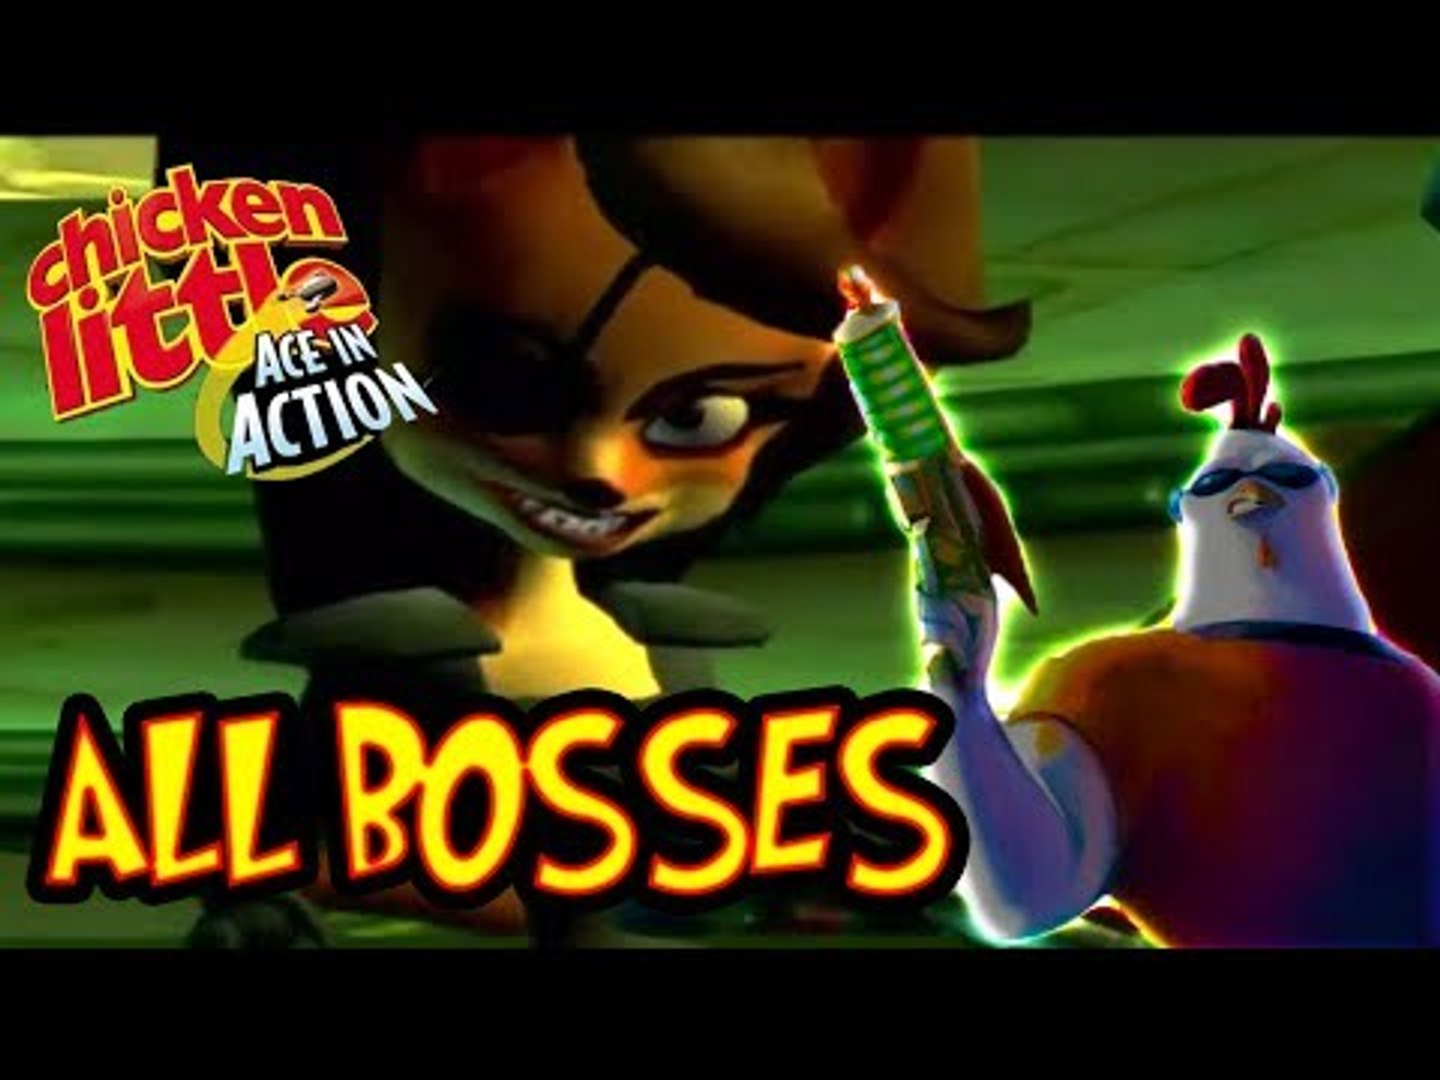 Chicken Little Ace in Action All Bosses | Final Boss (Wii, PS2)